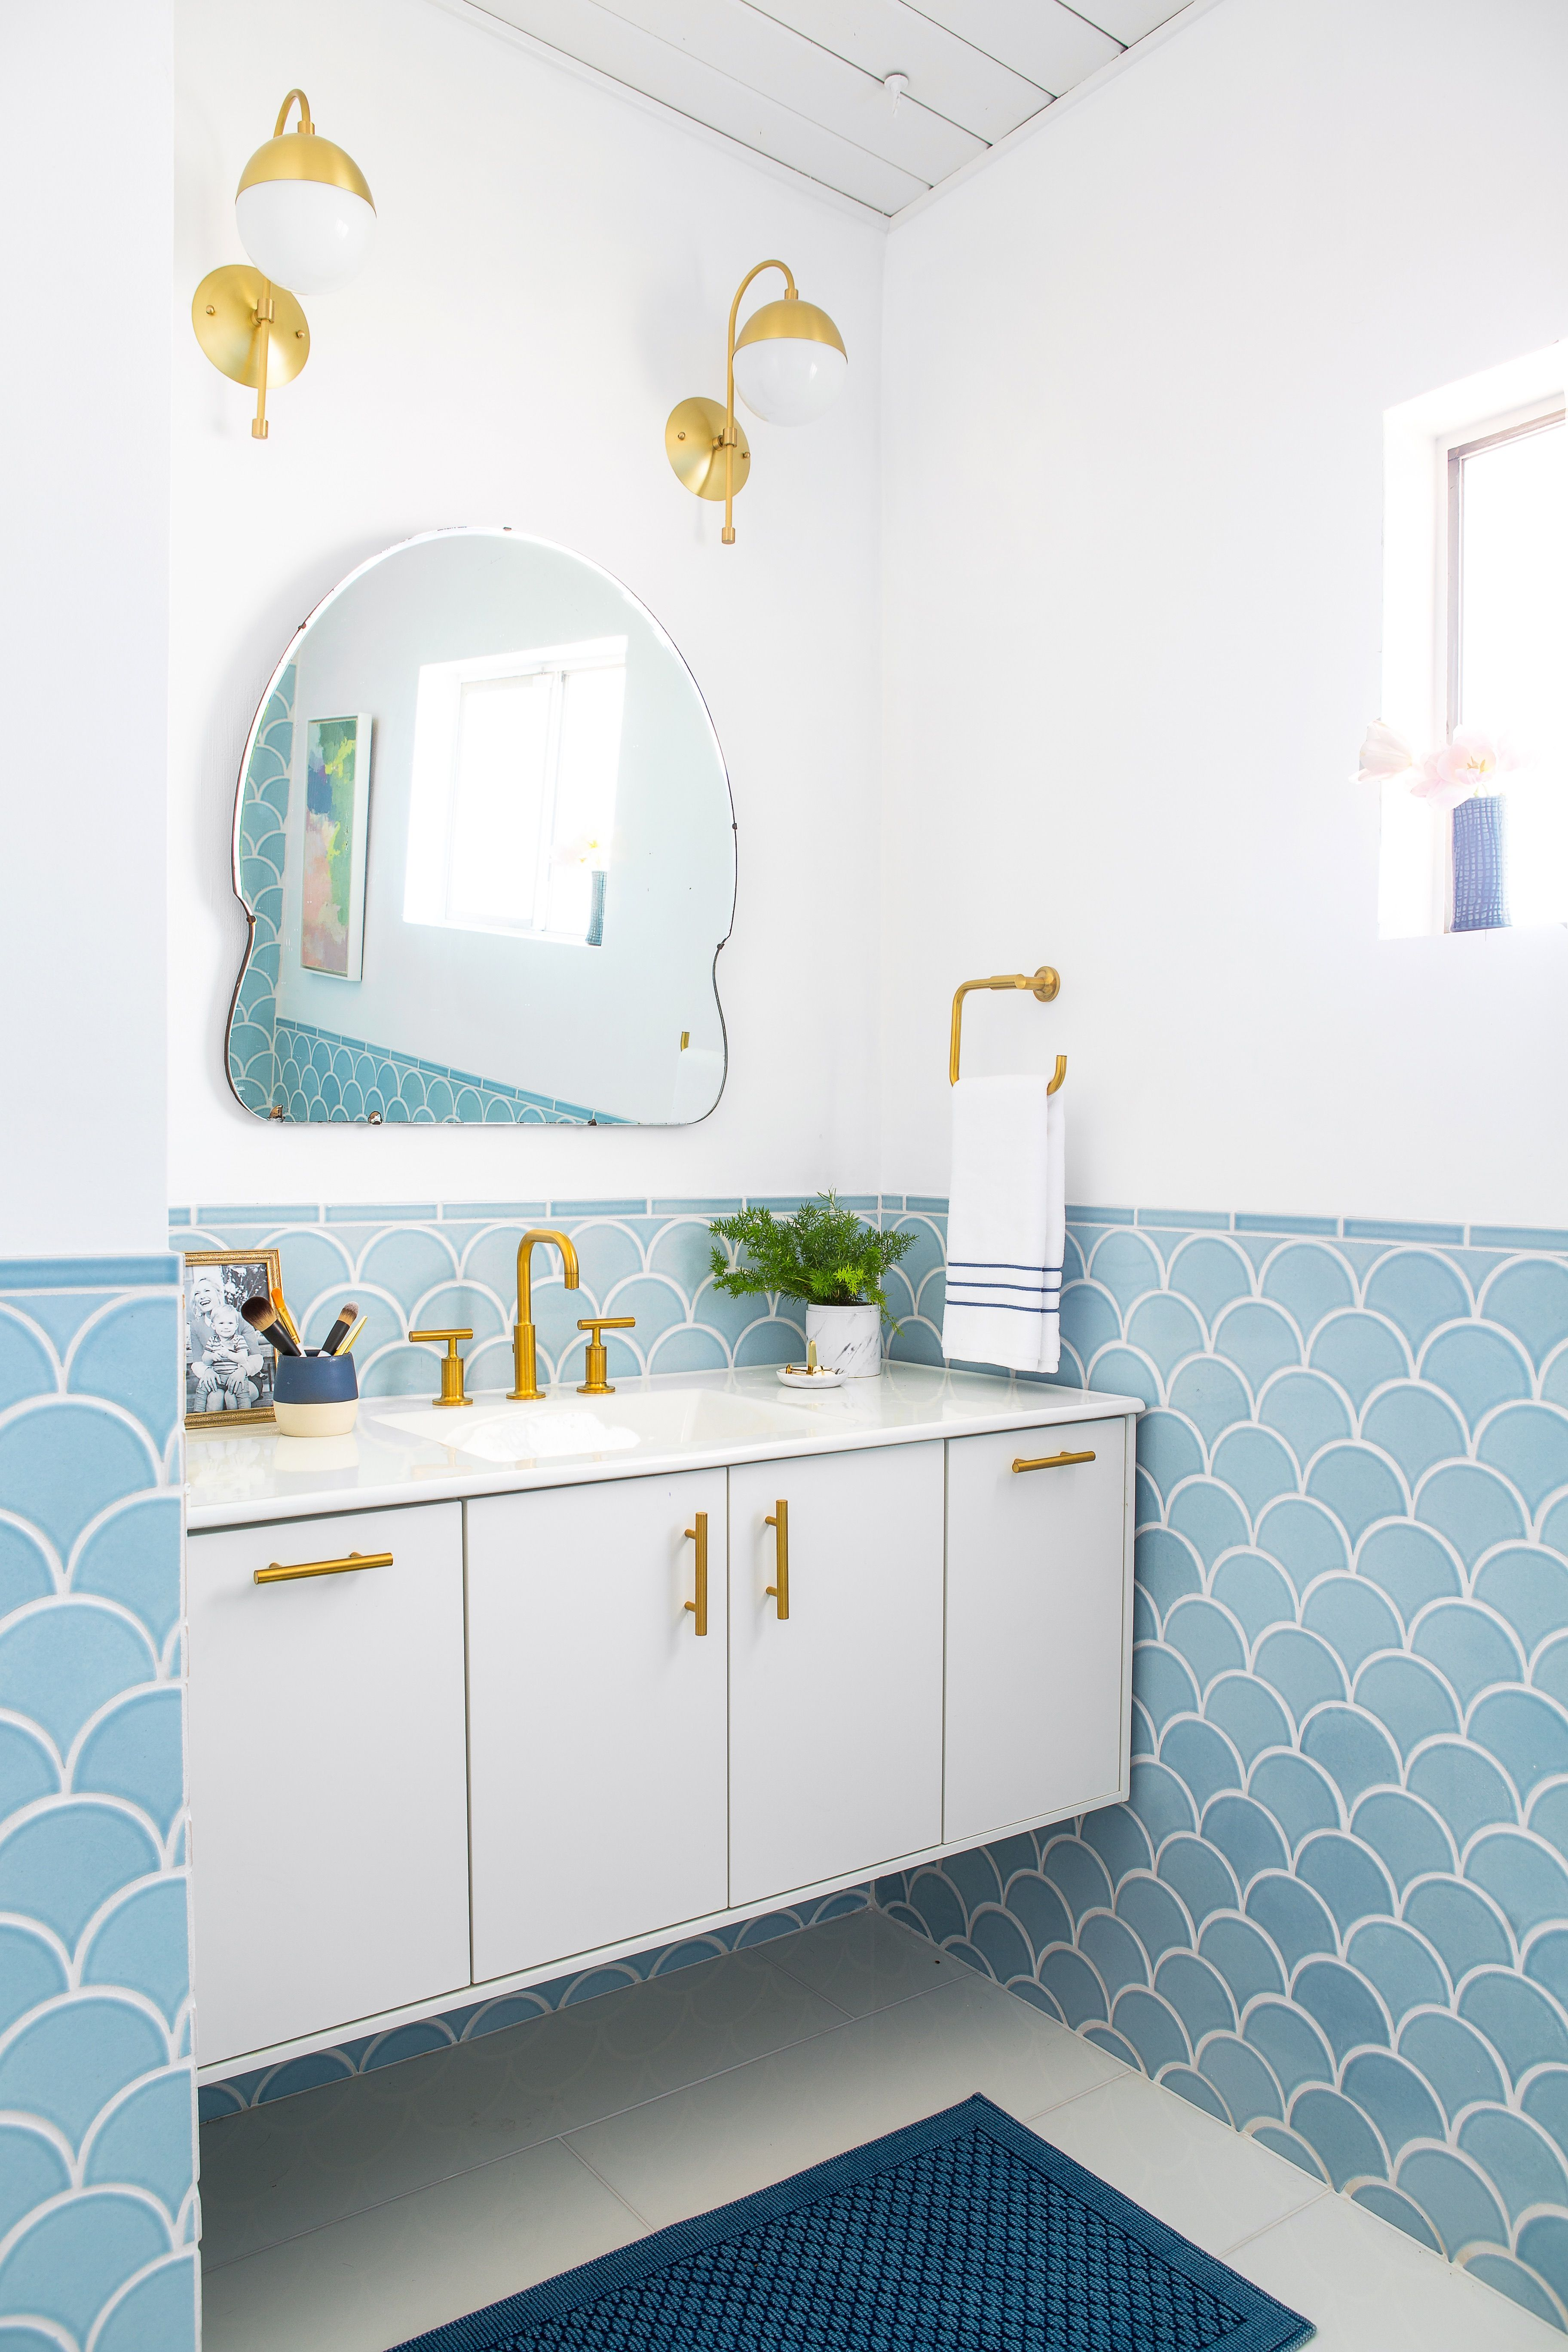 New Design Bathrooms Prepossessing 10 Home Decor Trends That Will Blow Up In 2016  Bathroom Mirrors 2018